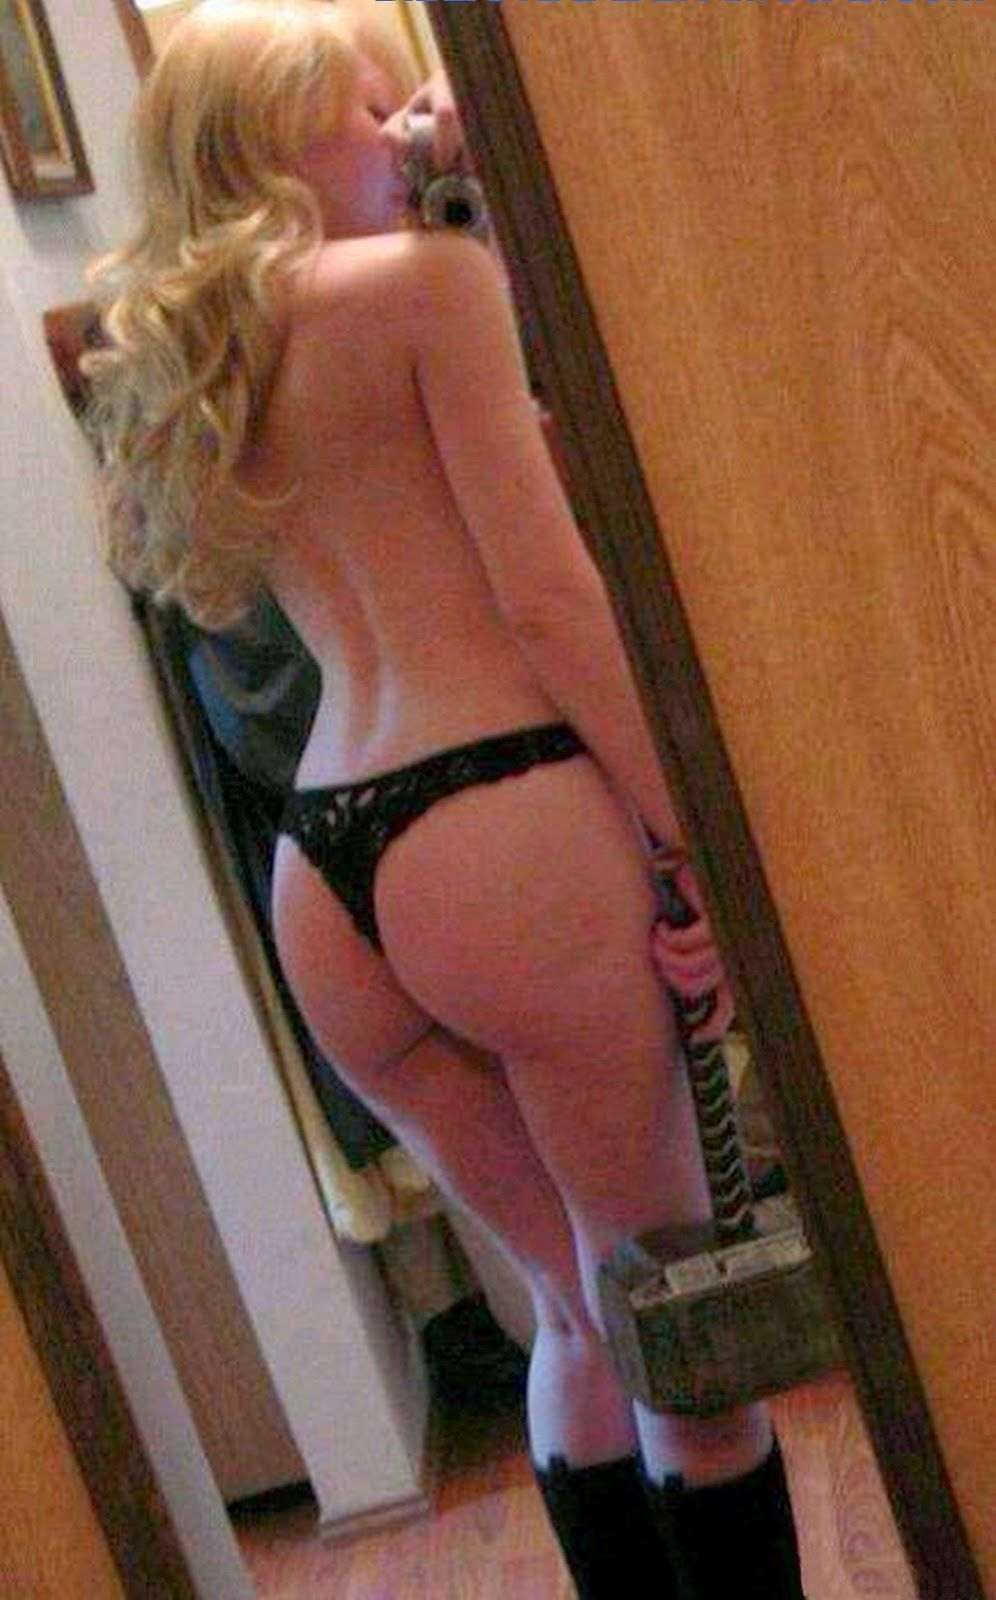 Jennette Mccurdy Selfie  Extremely Hot Sexual Ass Eatable Yum Yum